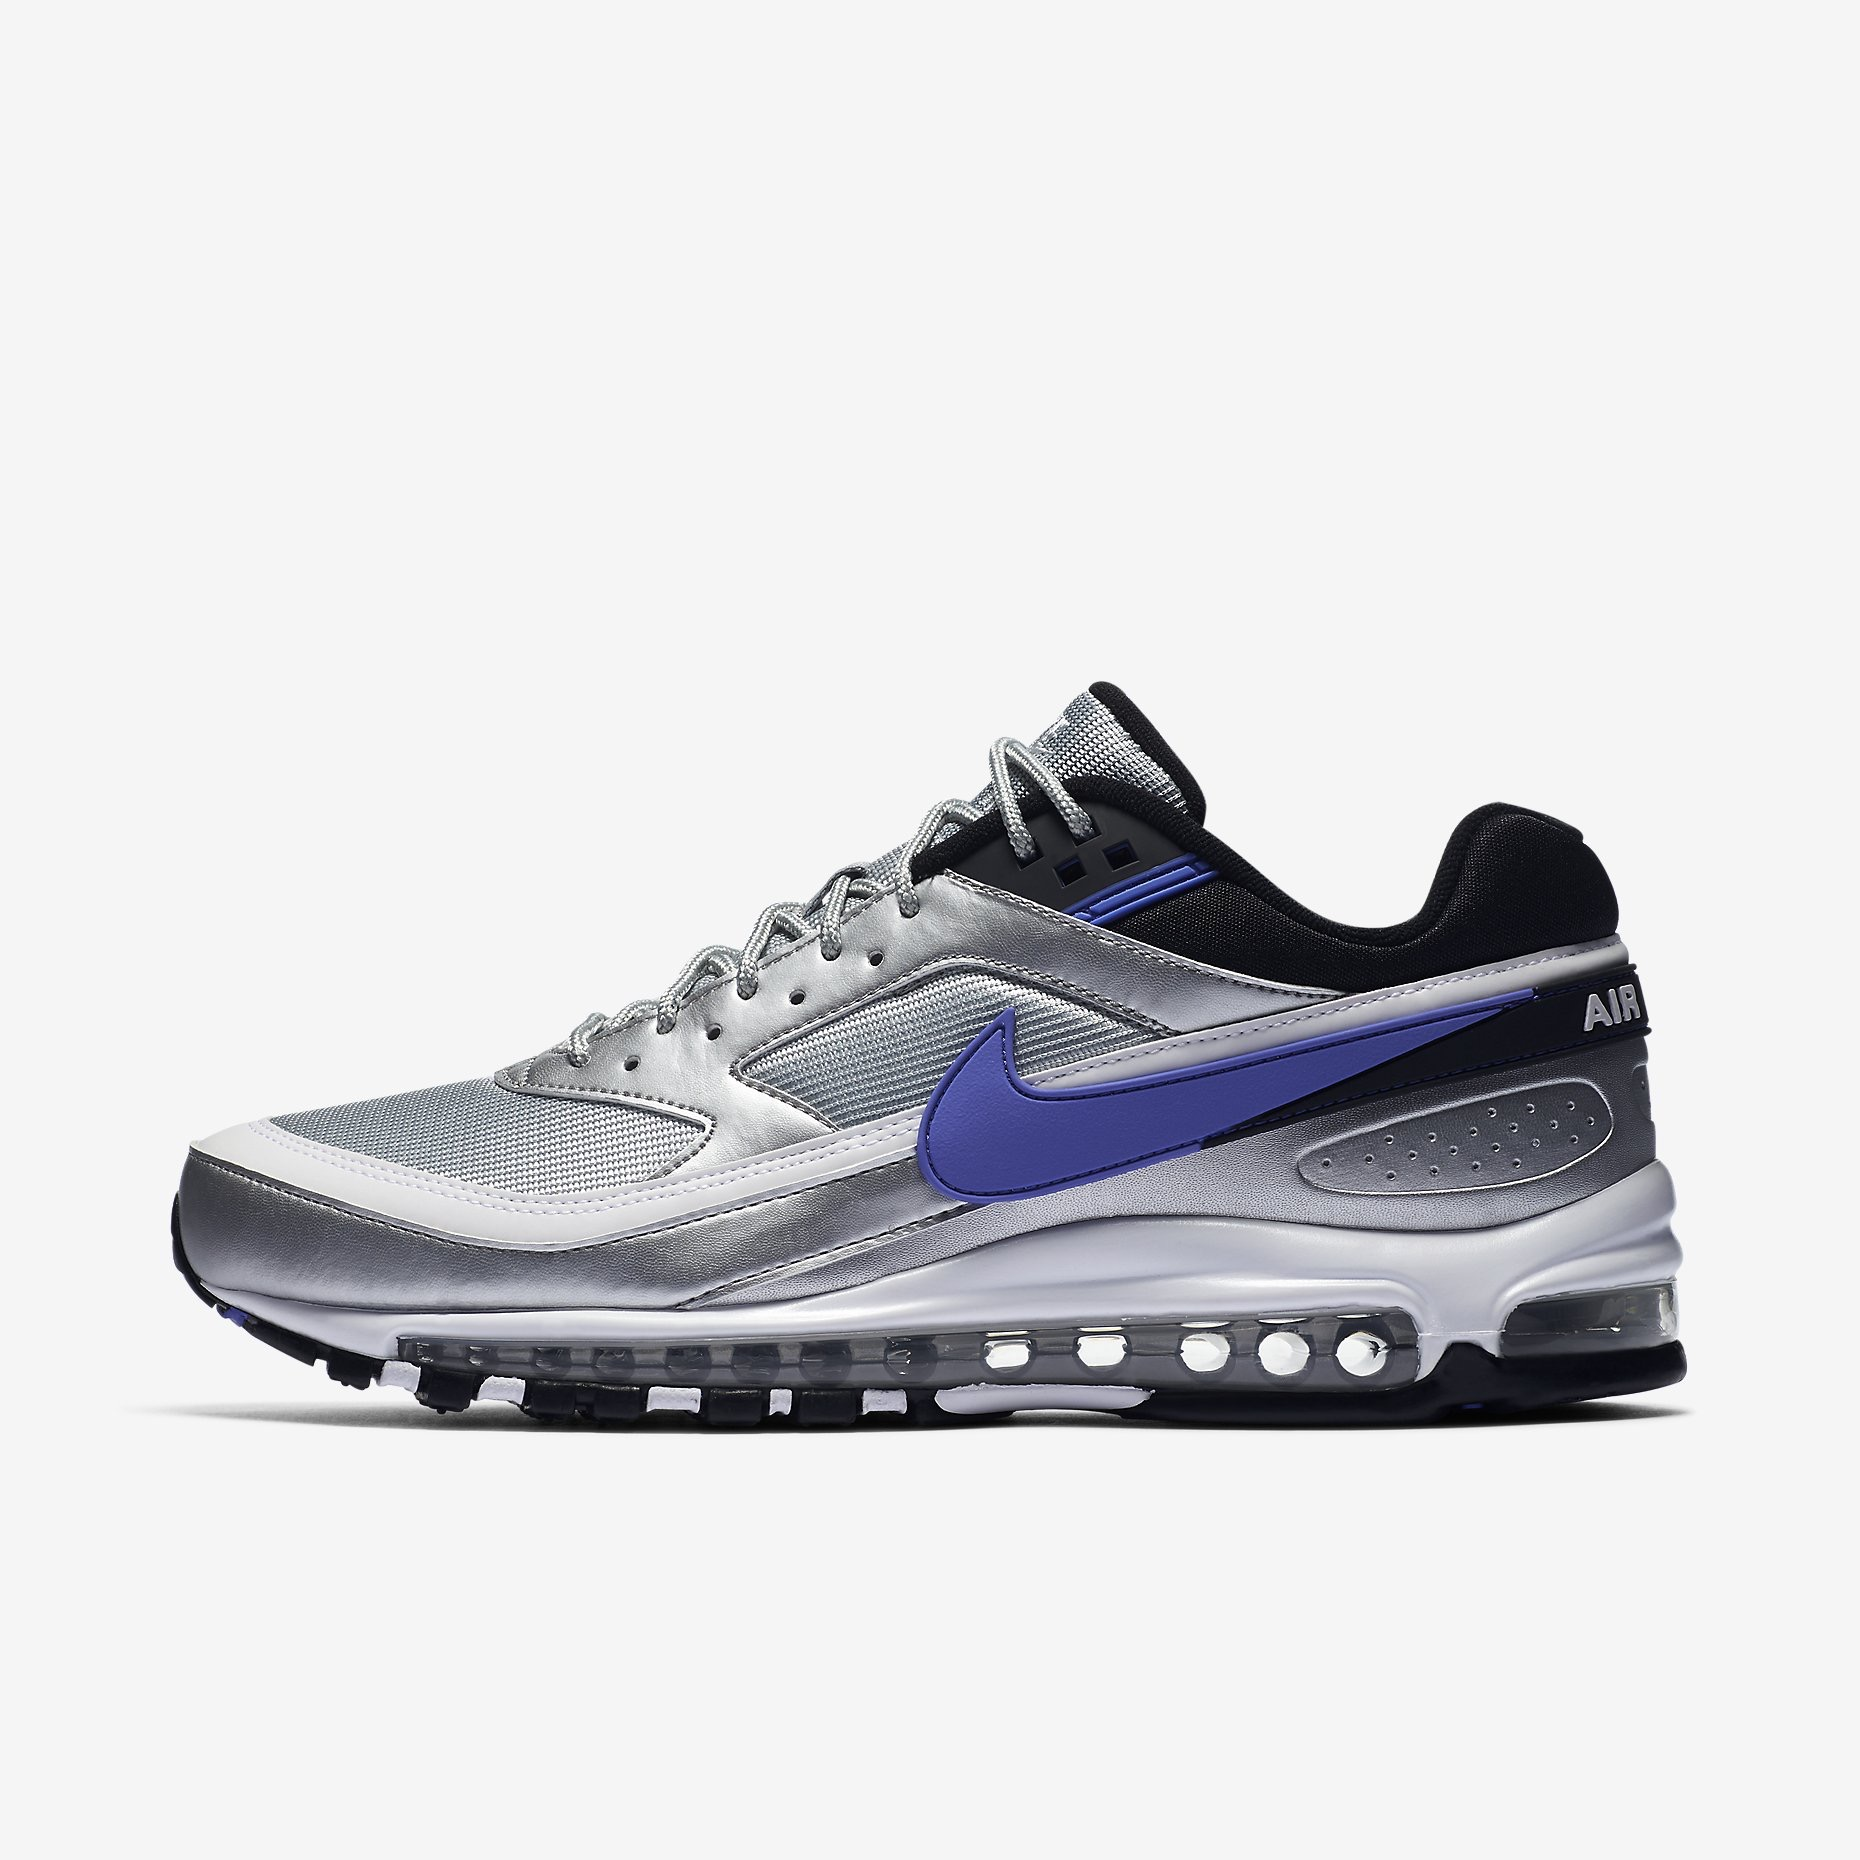 énorme réduction 1e0a4 08fad Nike Air Max 97 BW QS AO2406